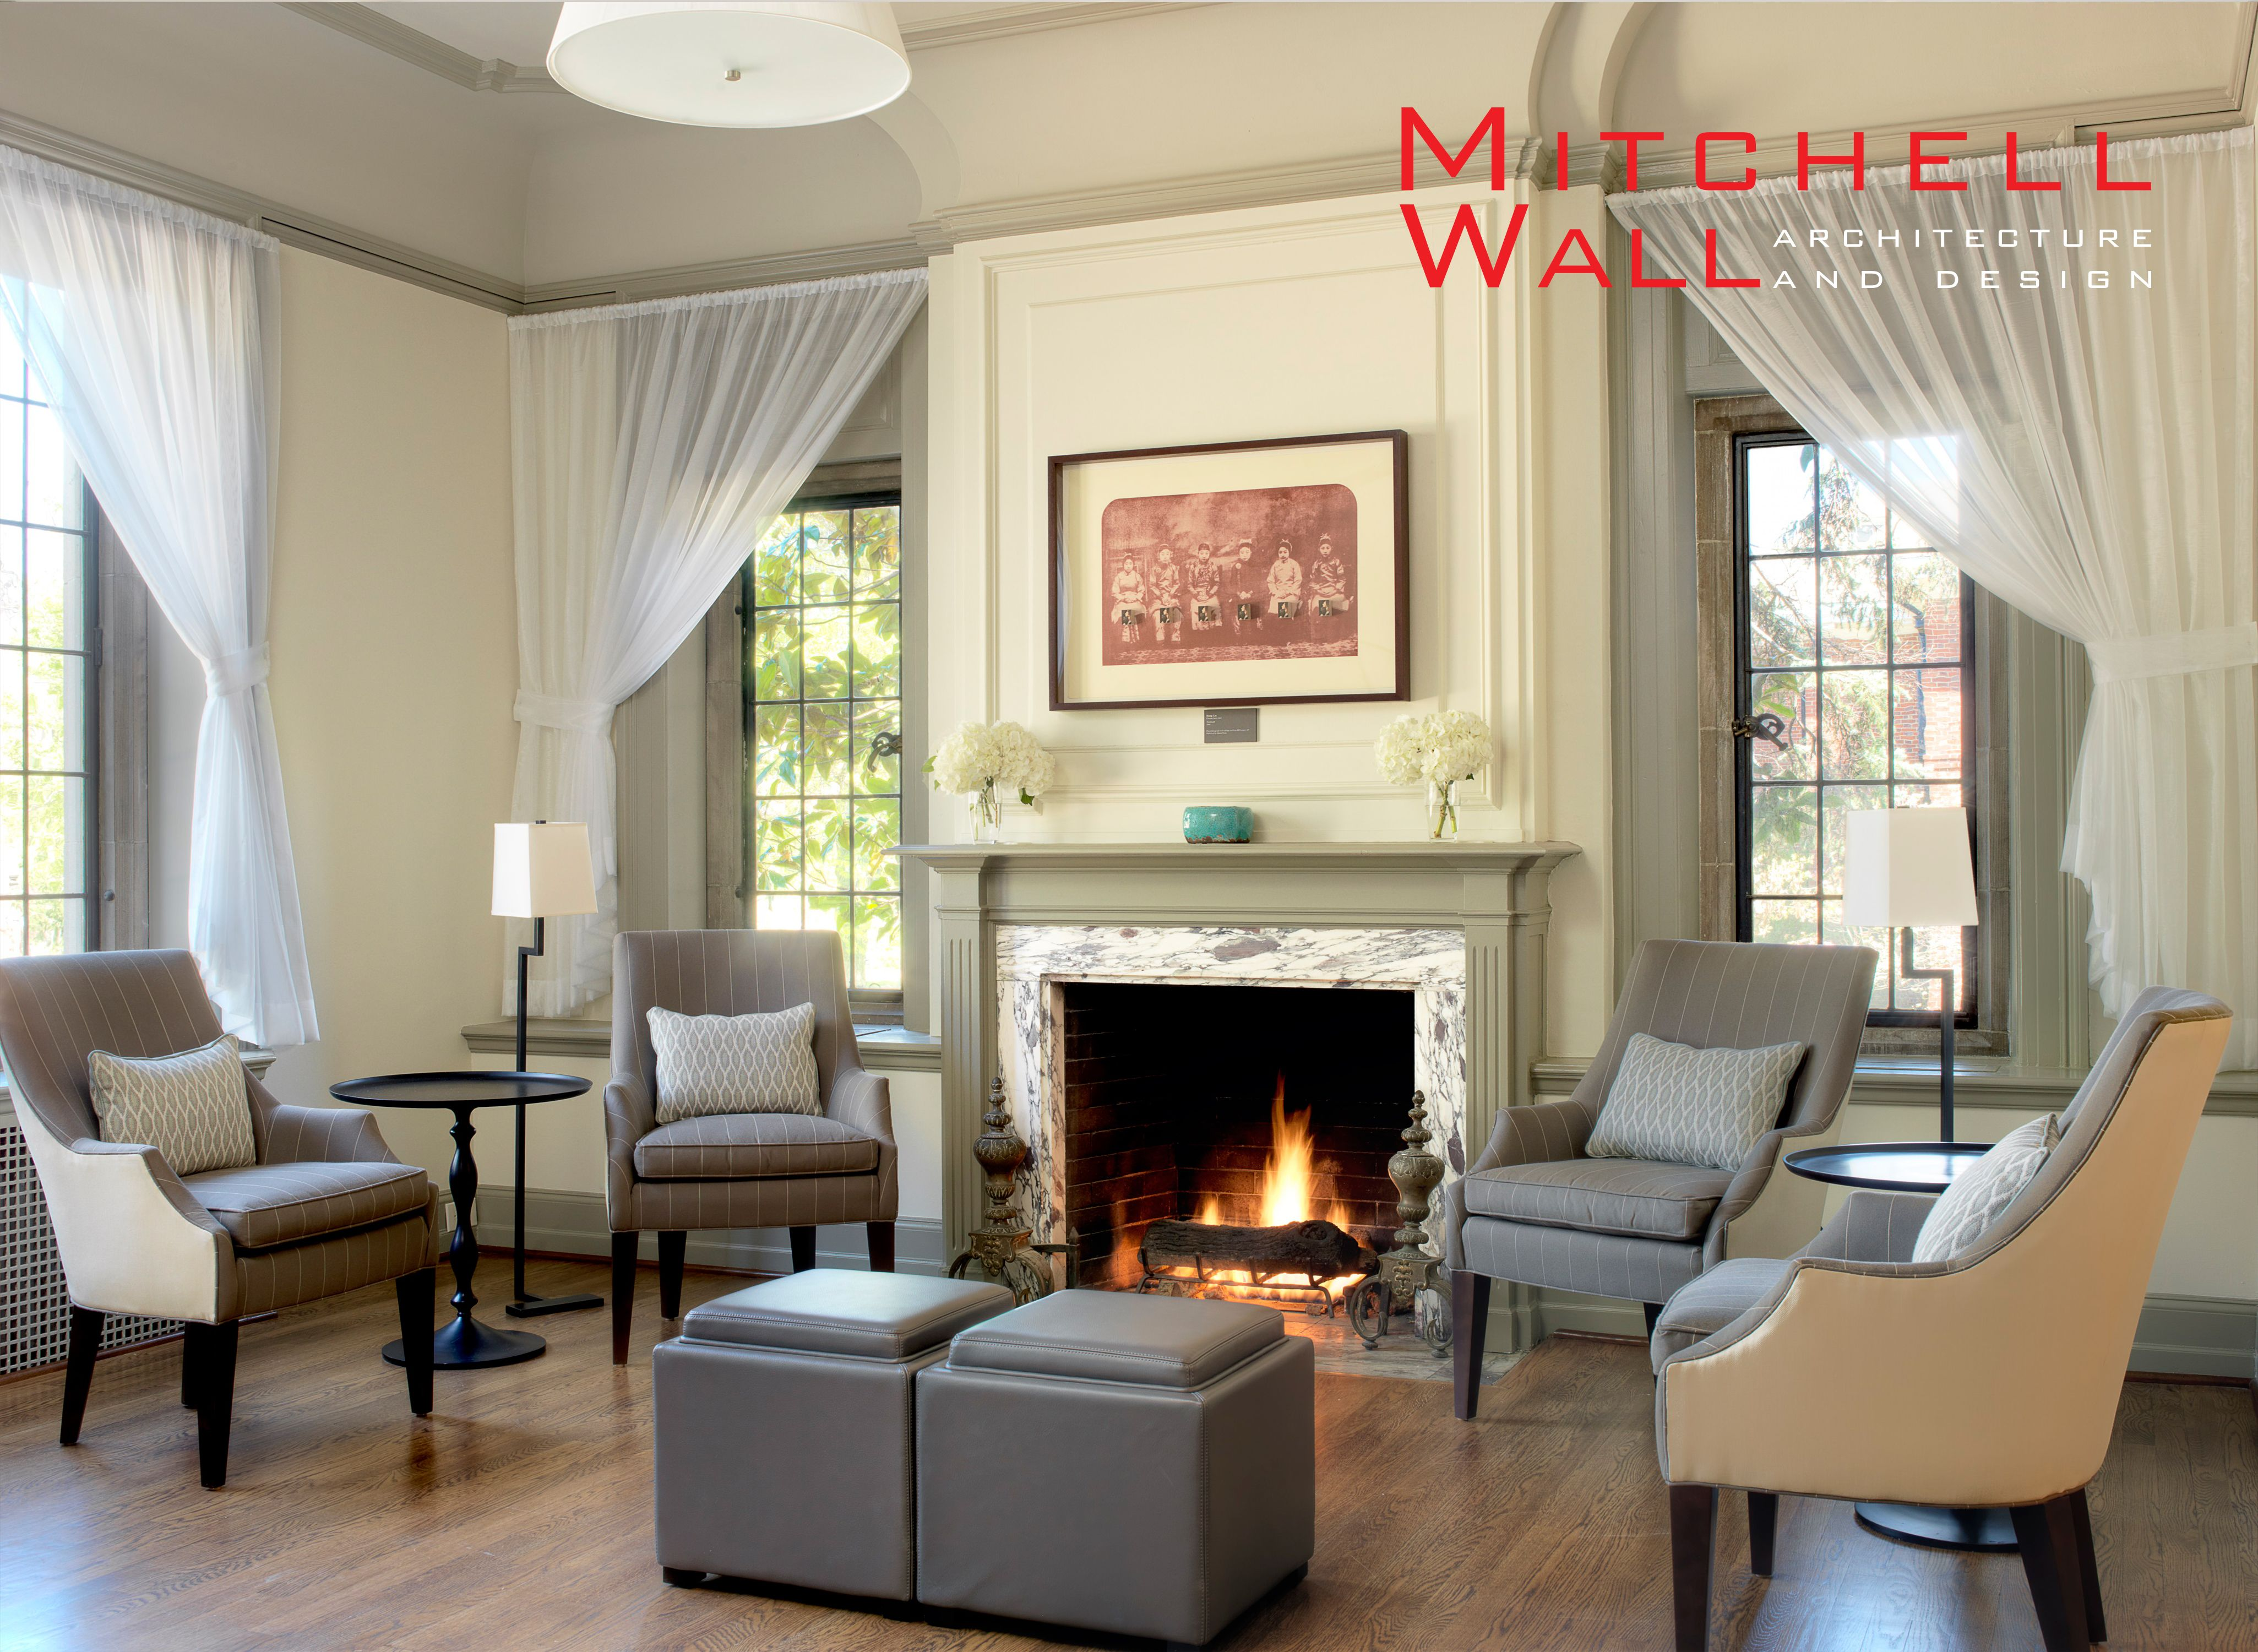 Beautifully designed sitting room with complete with a luxurious fireplace | Commercial Space